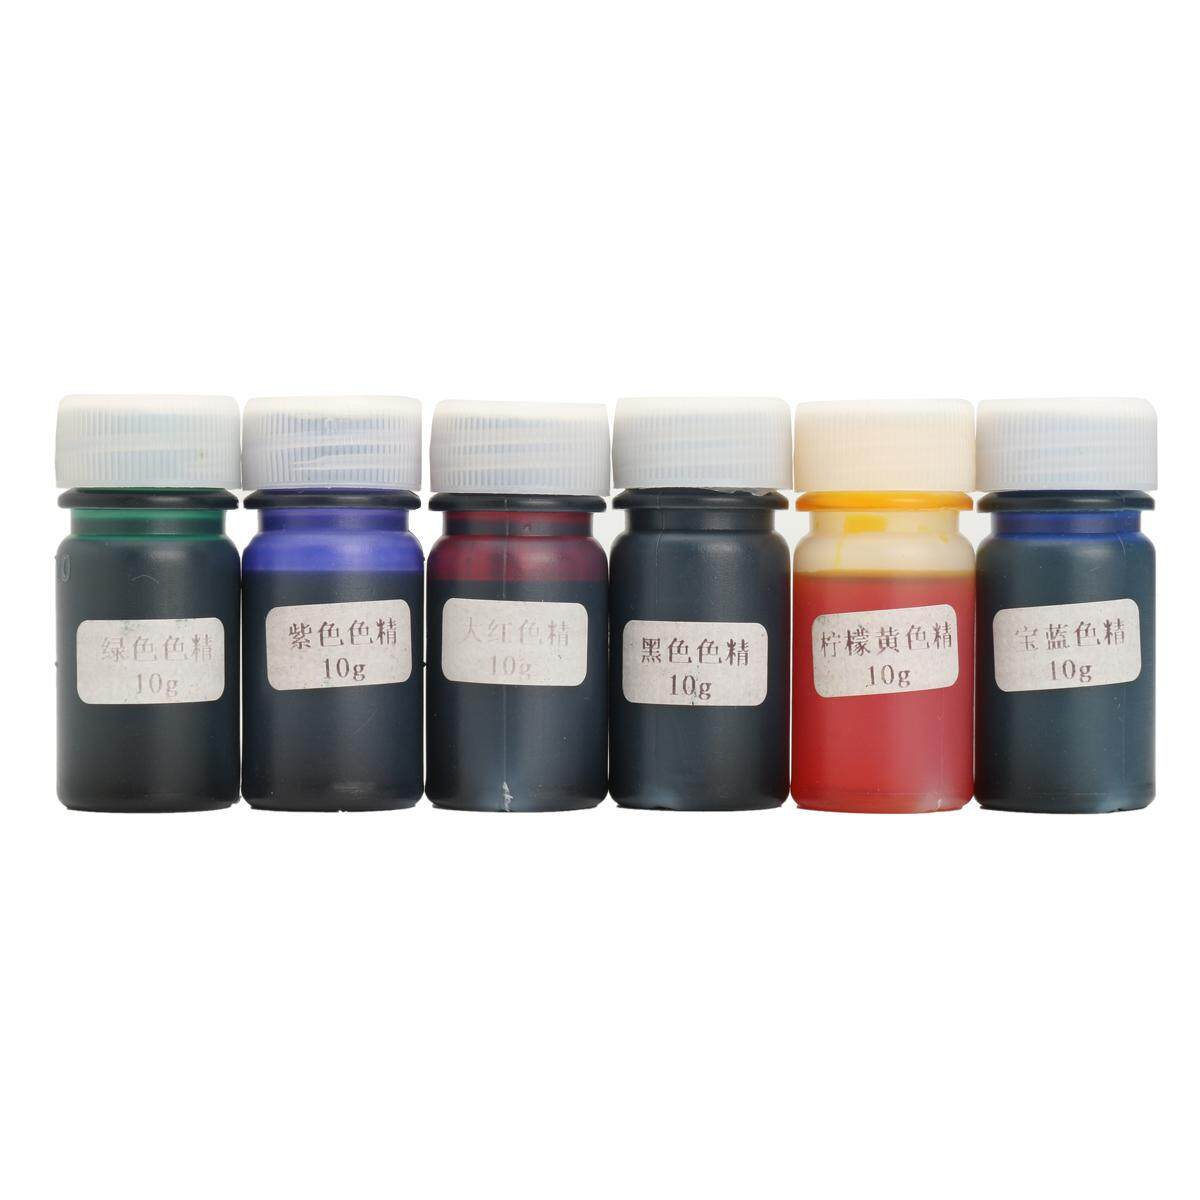 6pcs 10g Liquid Silicone Resin Pigment Dye Mix Color Colorant Diy Art Crafts By Moonbeam.